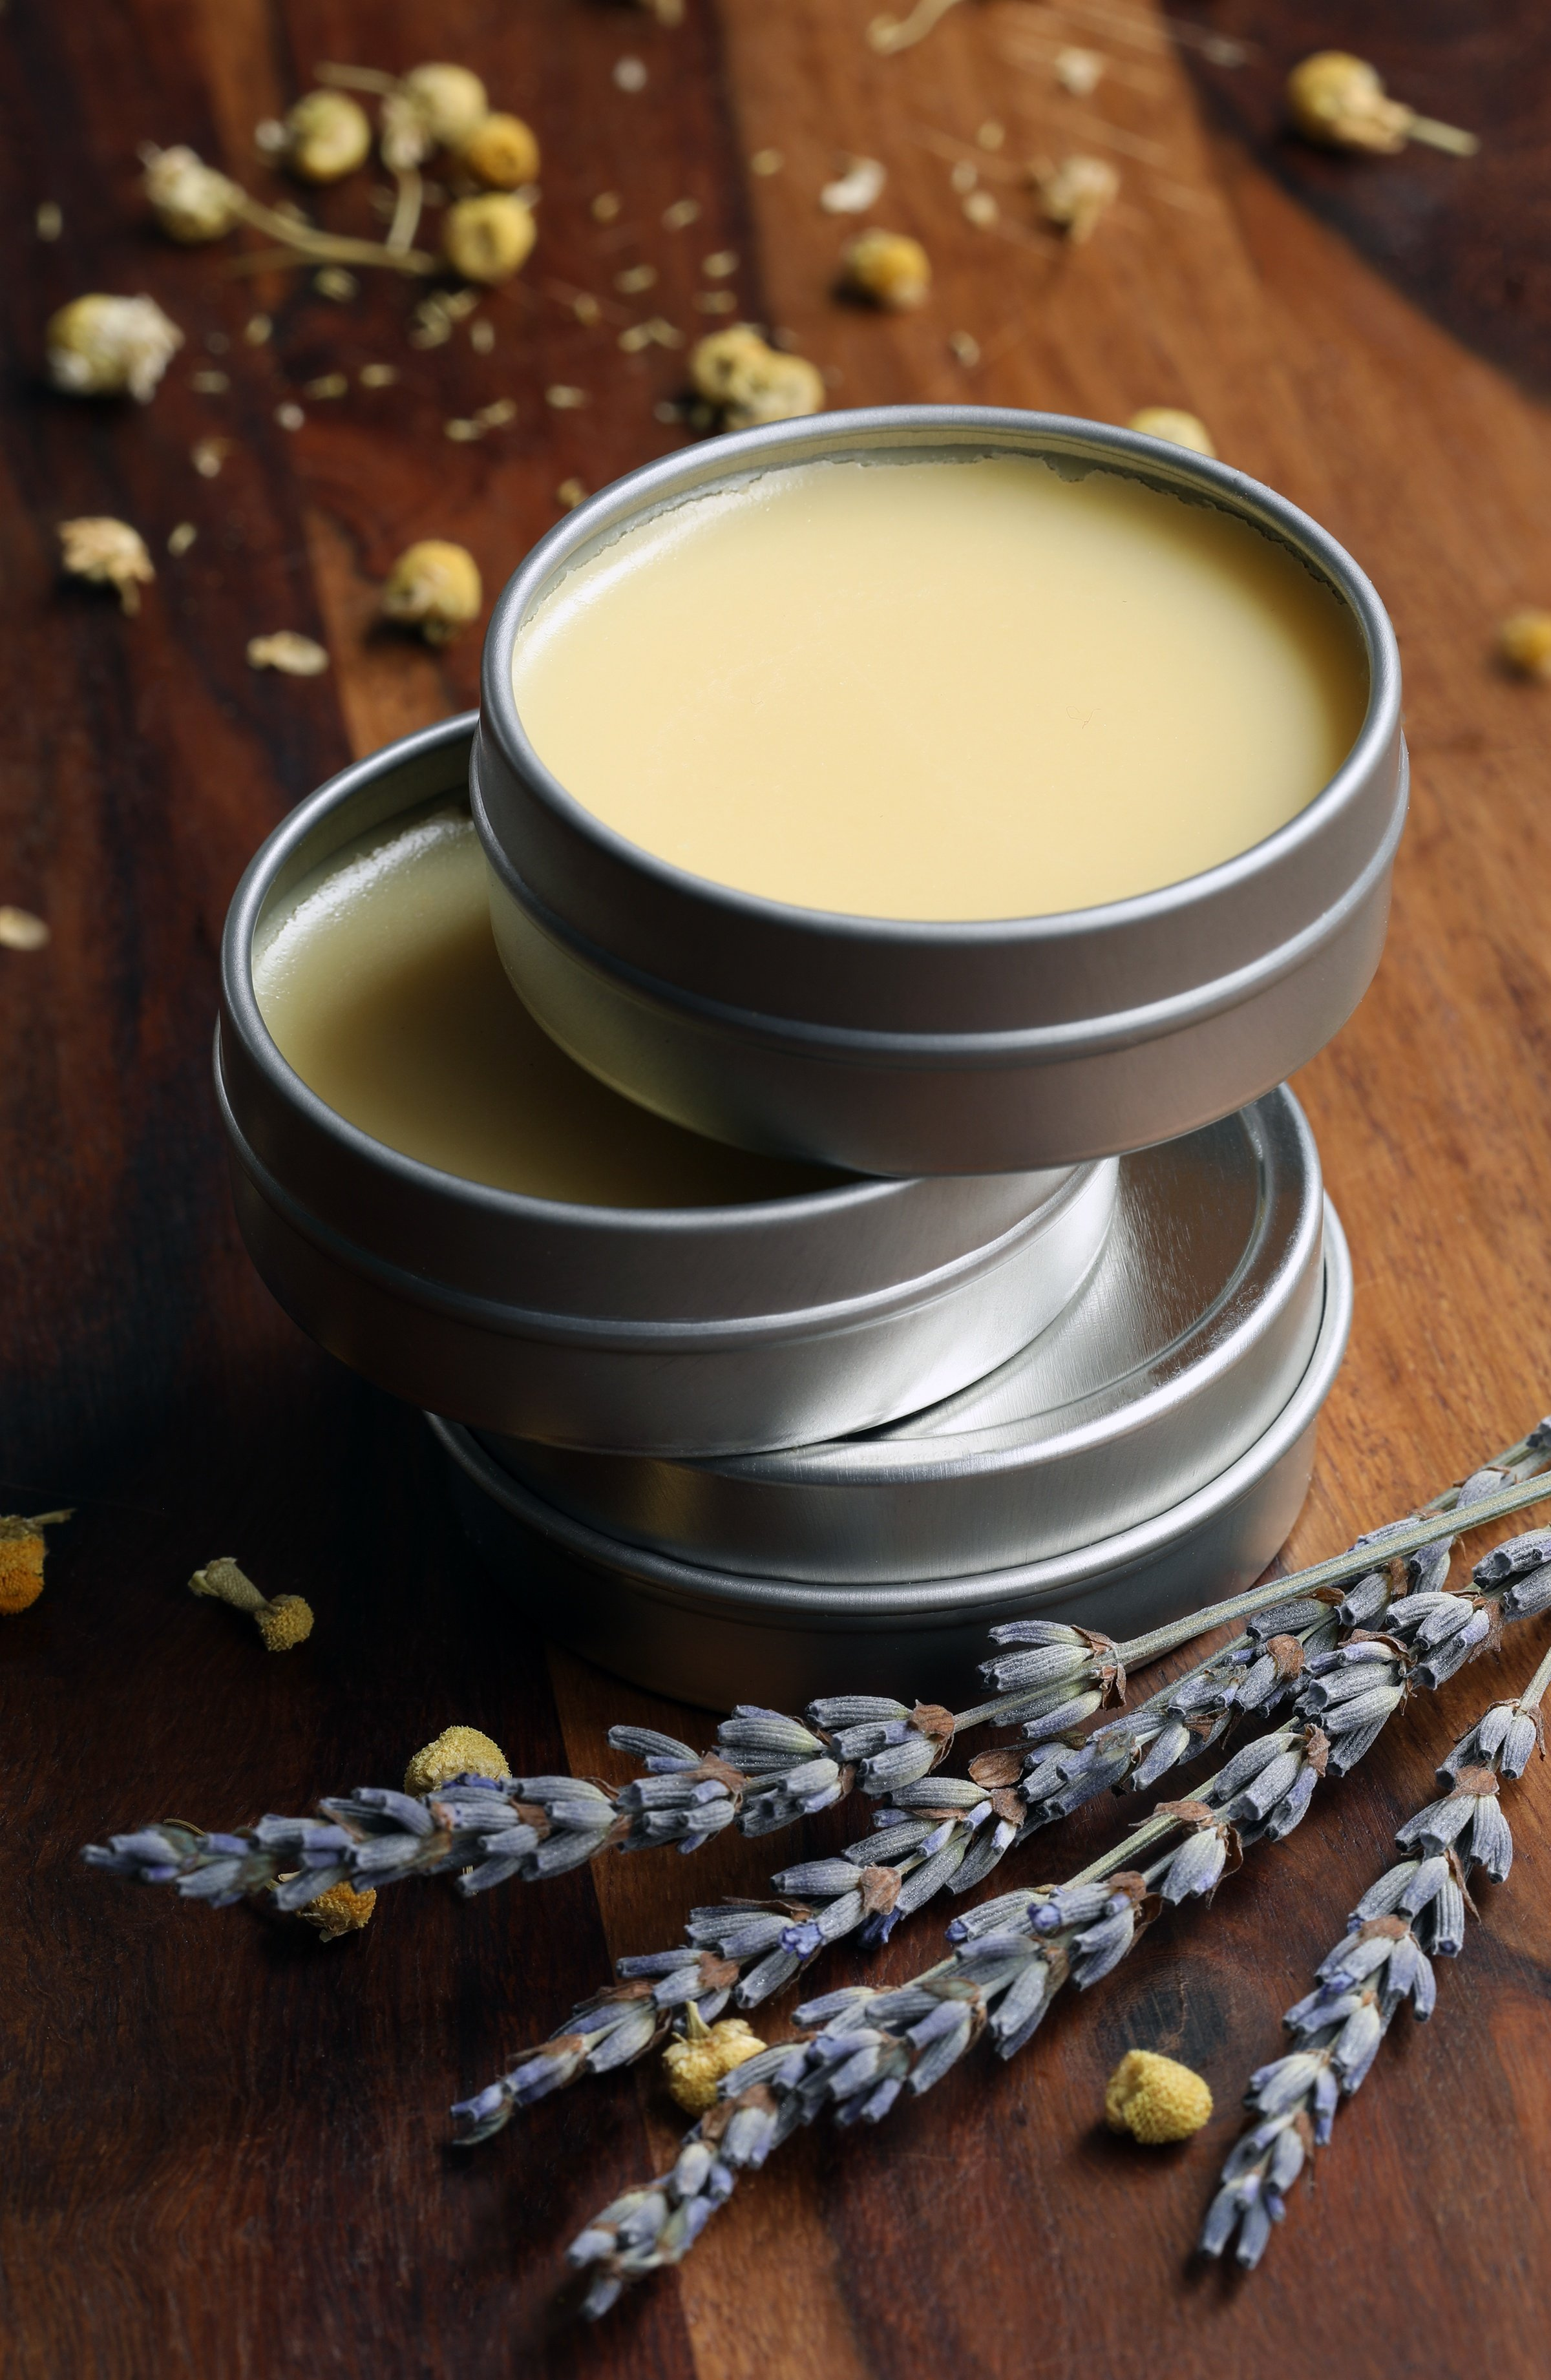 stacked tins of calendula vegan salve on wooden surface with dried herbs